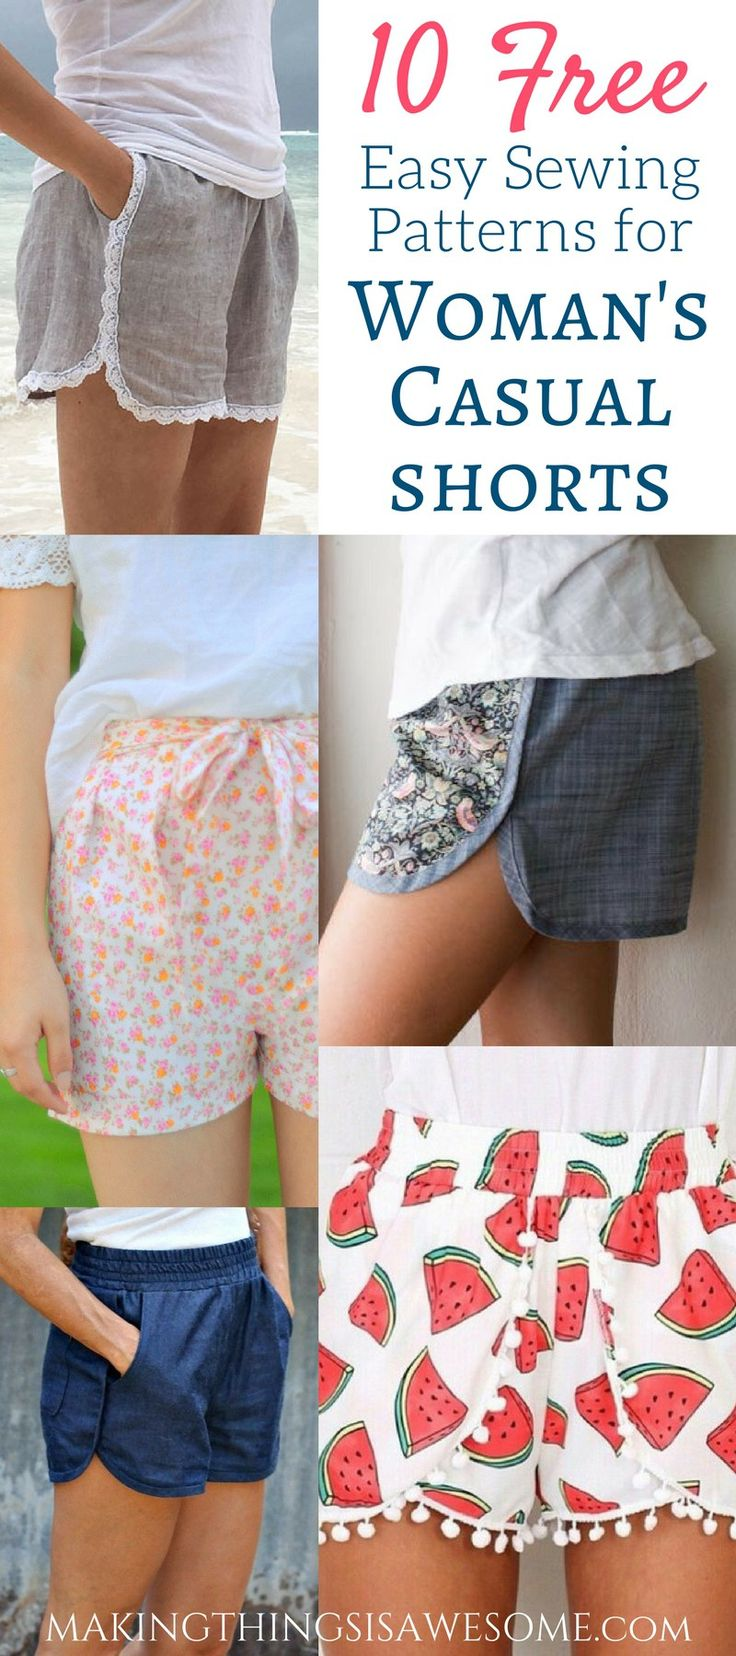 10 Free Woman's Casual Shorts Sewing Patterns: Round-up